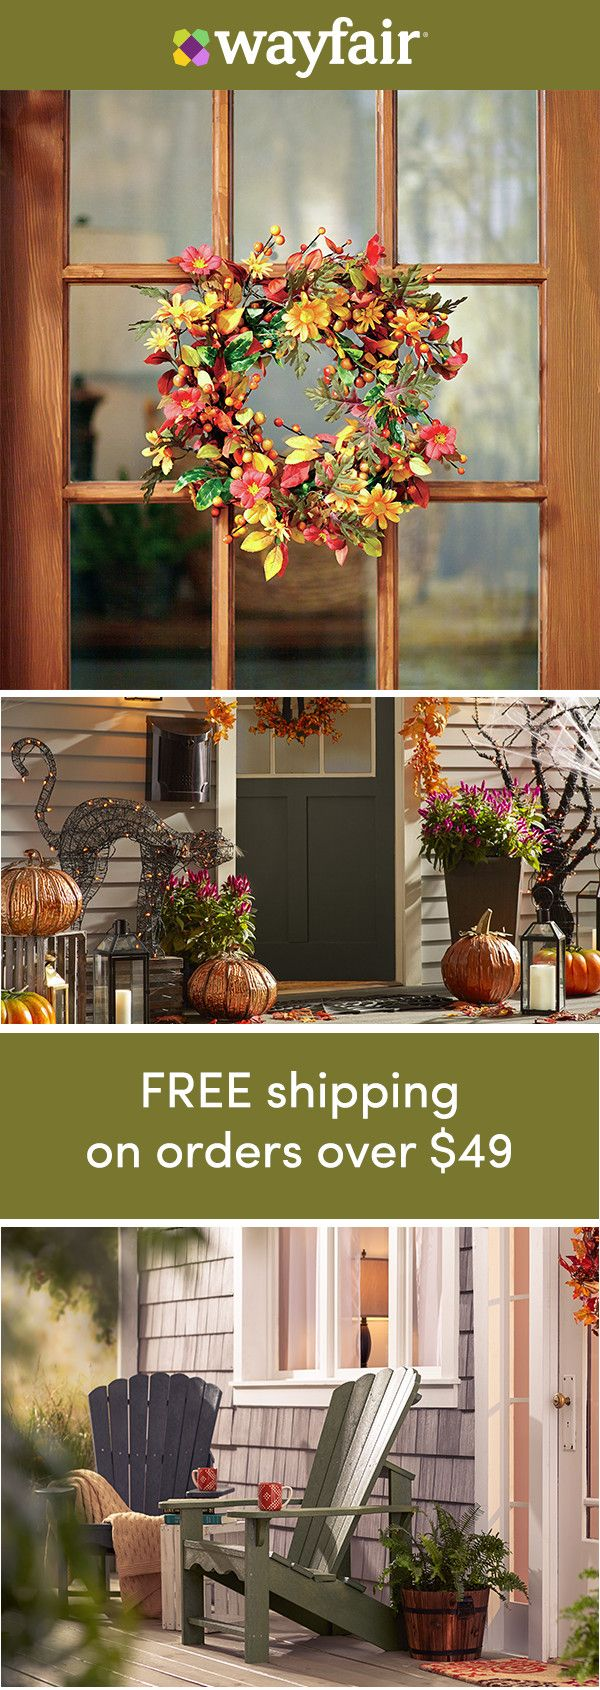 Decorating doorways: Sign up for access to exclusive sales and quality finds for every budget! Who says décor has to stay in the house? Surprise and delight with these doorway decorations. Sit back, save, and enjoy FREE shipping on all orders over $49 at